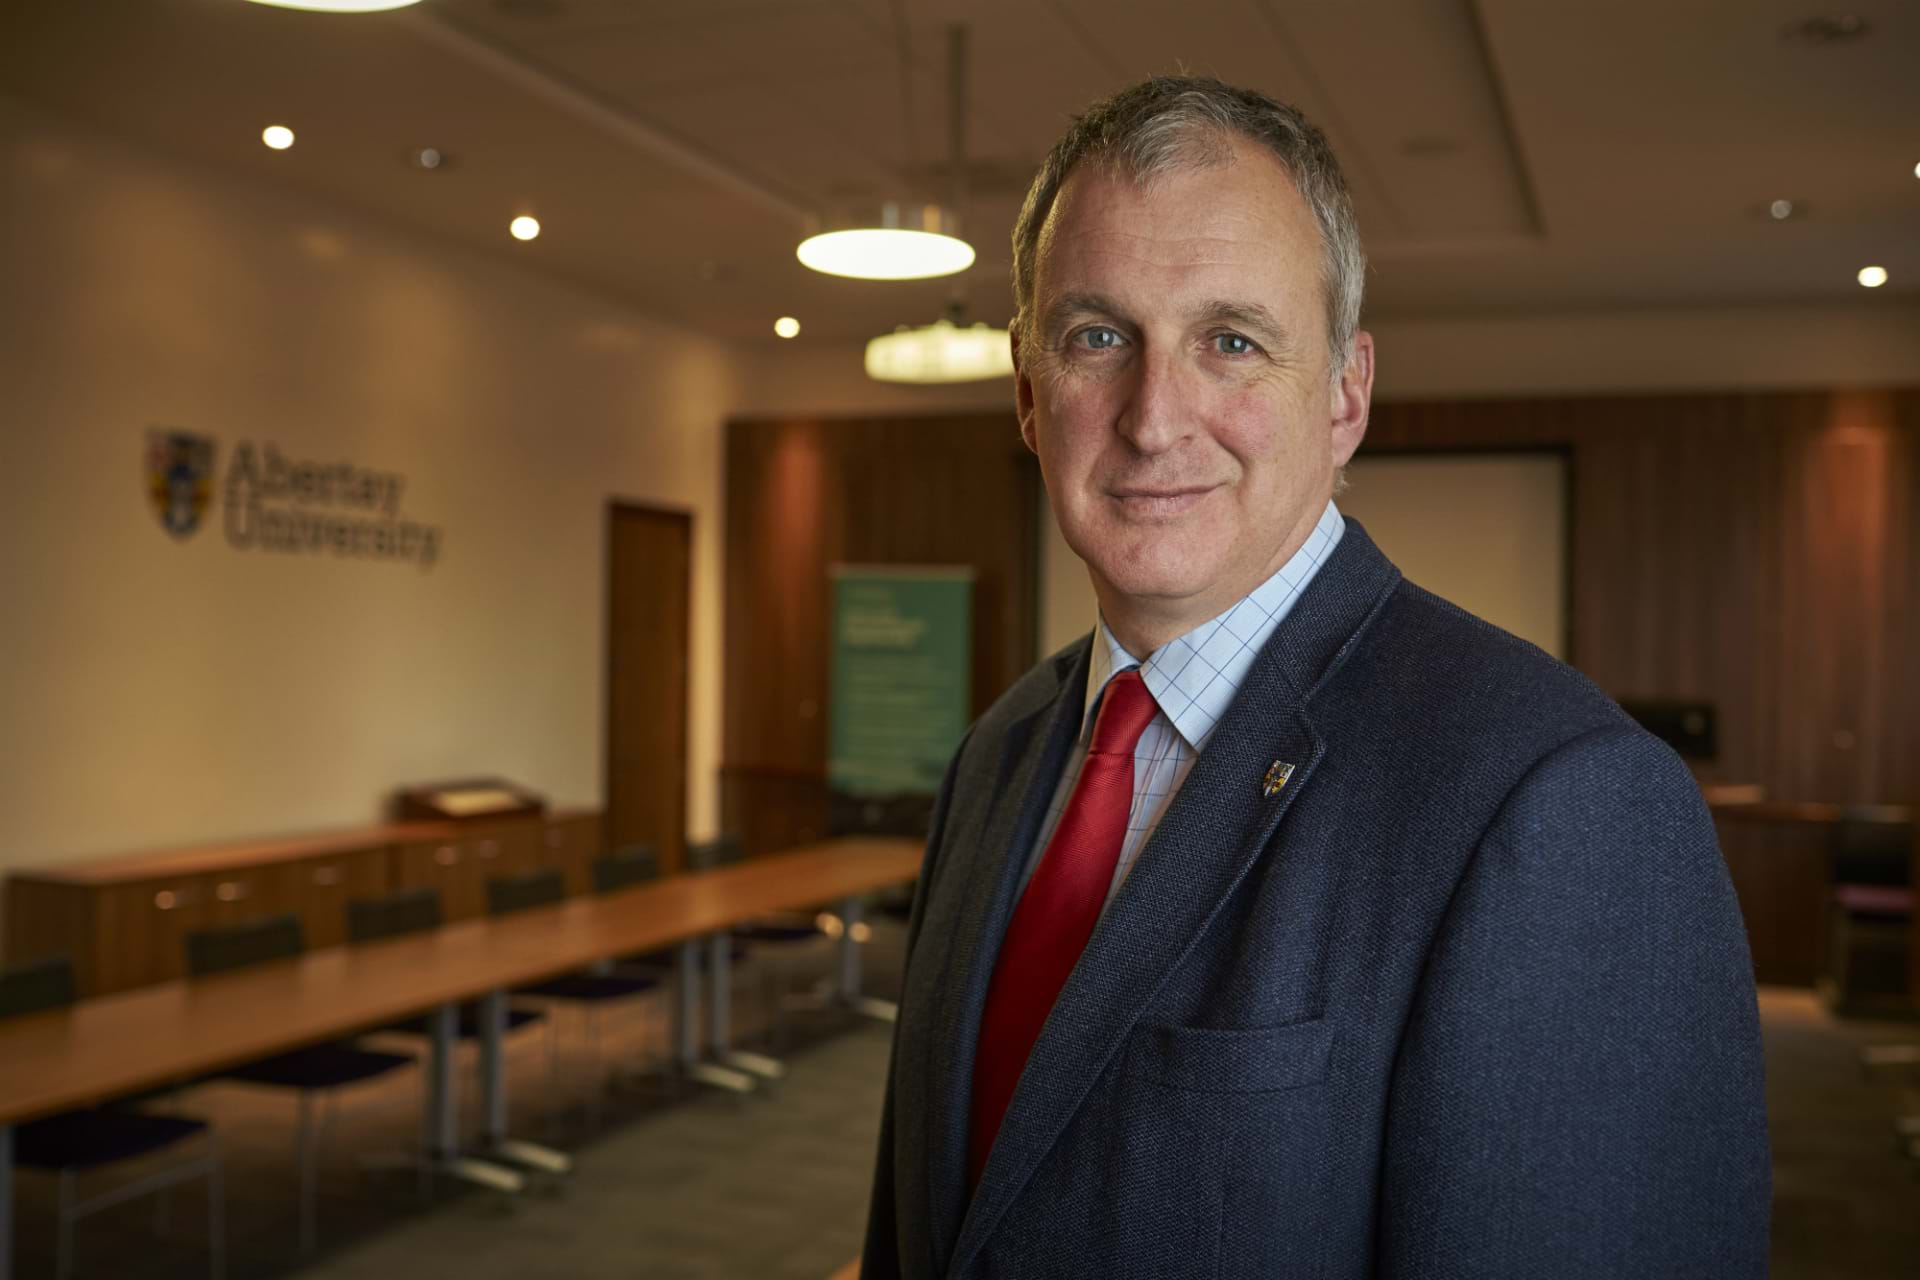 Professor Nigel Seaton has been elected as a new Fellow of the Royal Society of Edinburgh